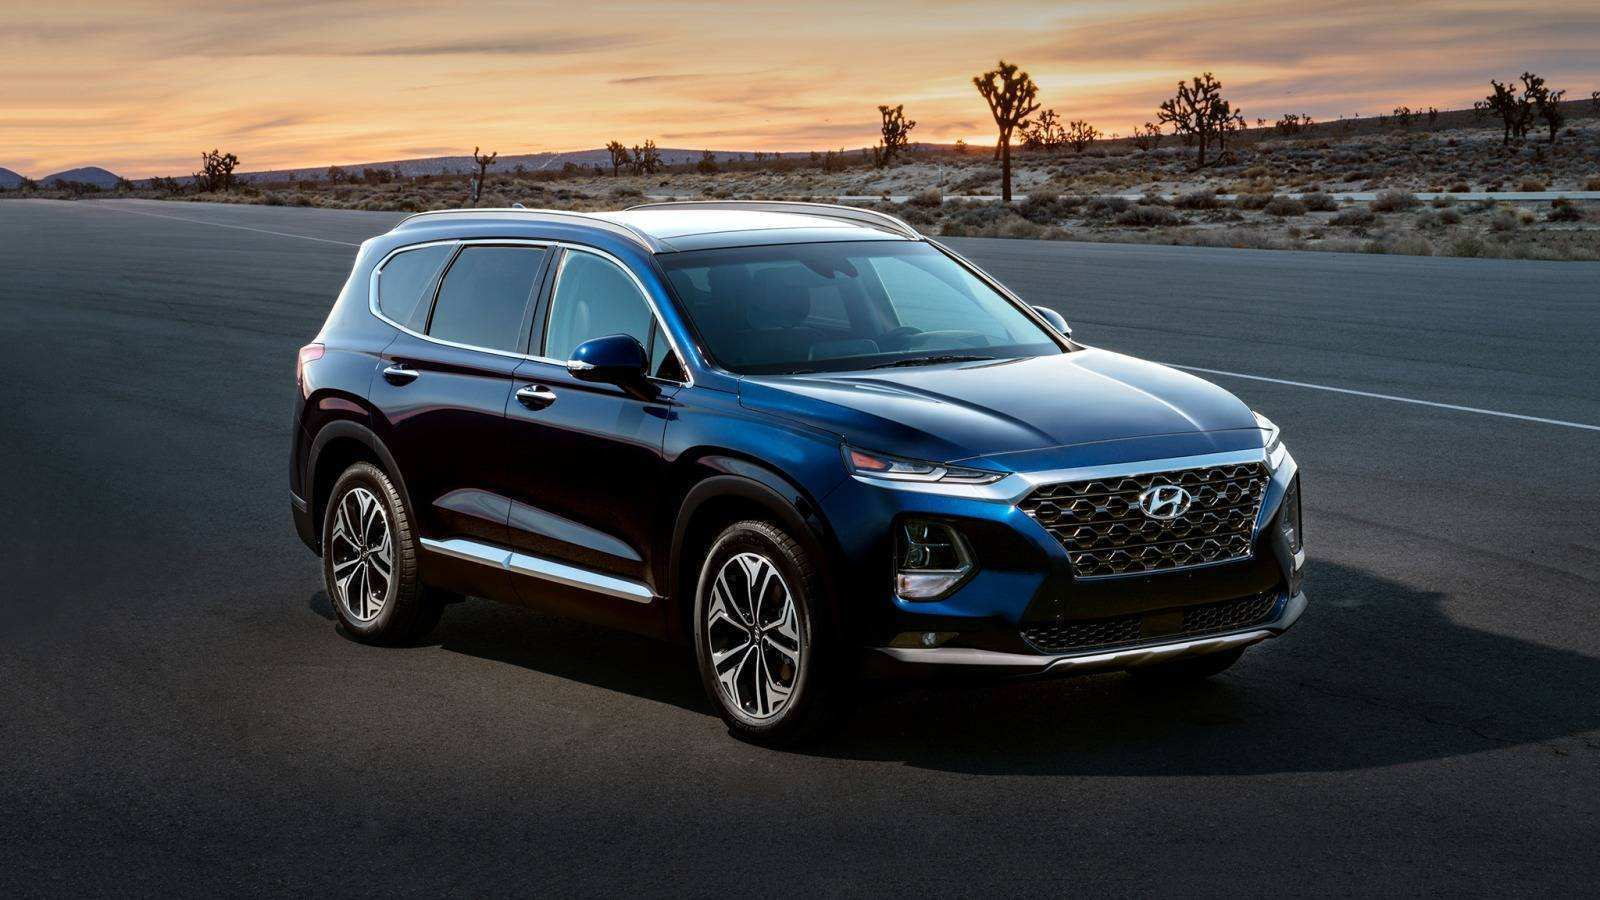 31 New 2019 Hyundai Santa Fe Spesification